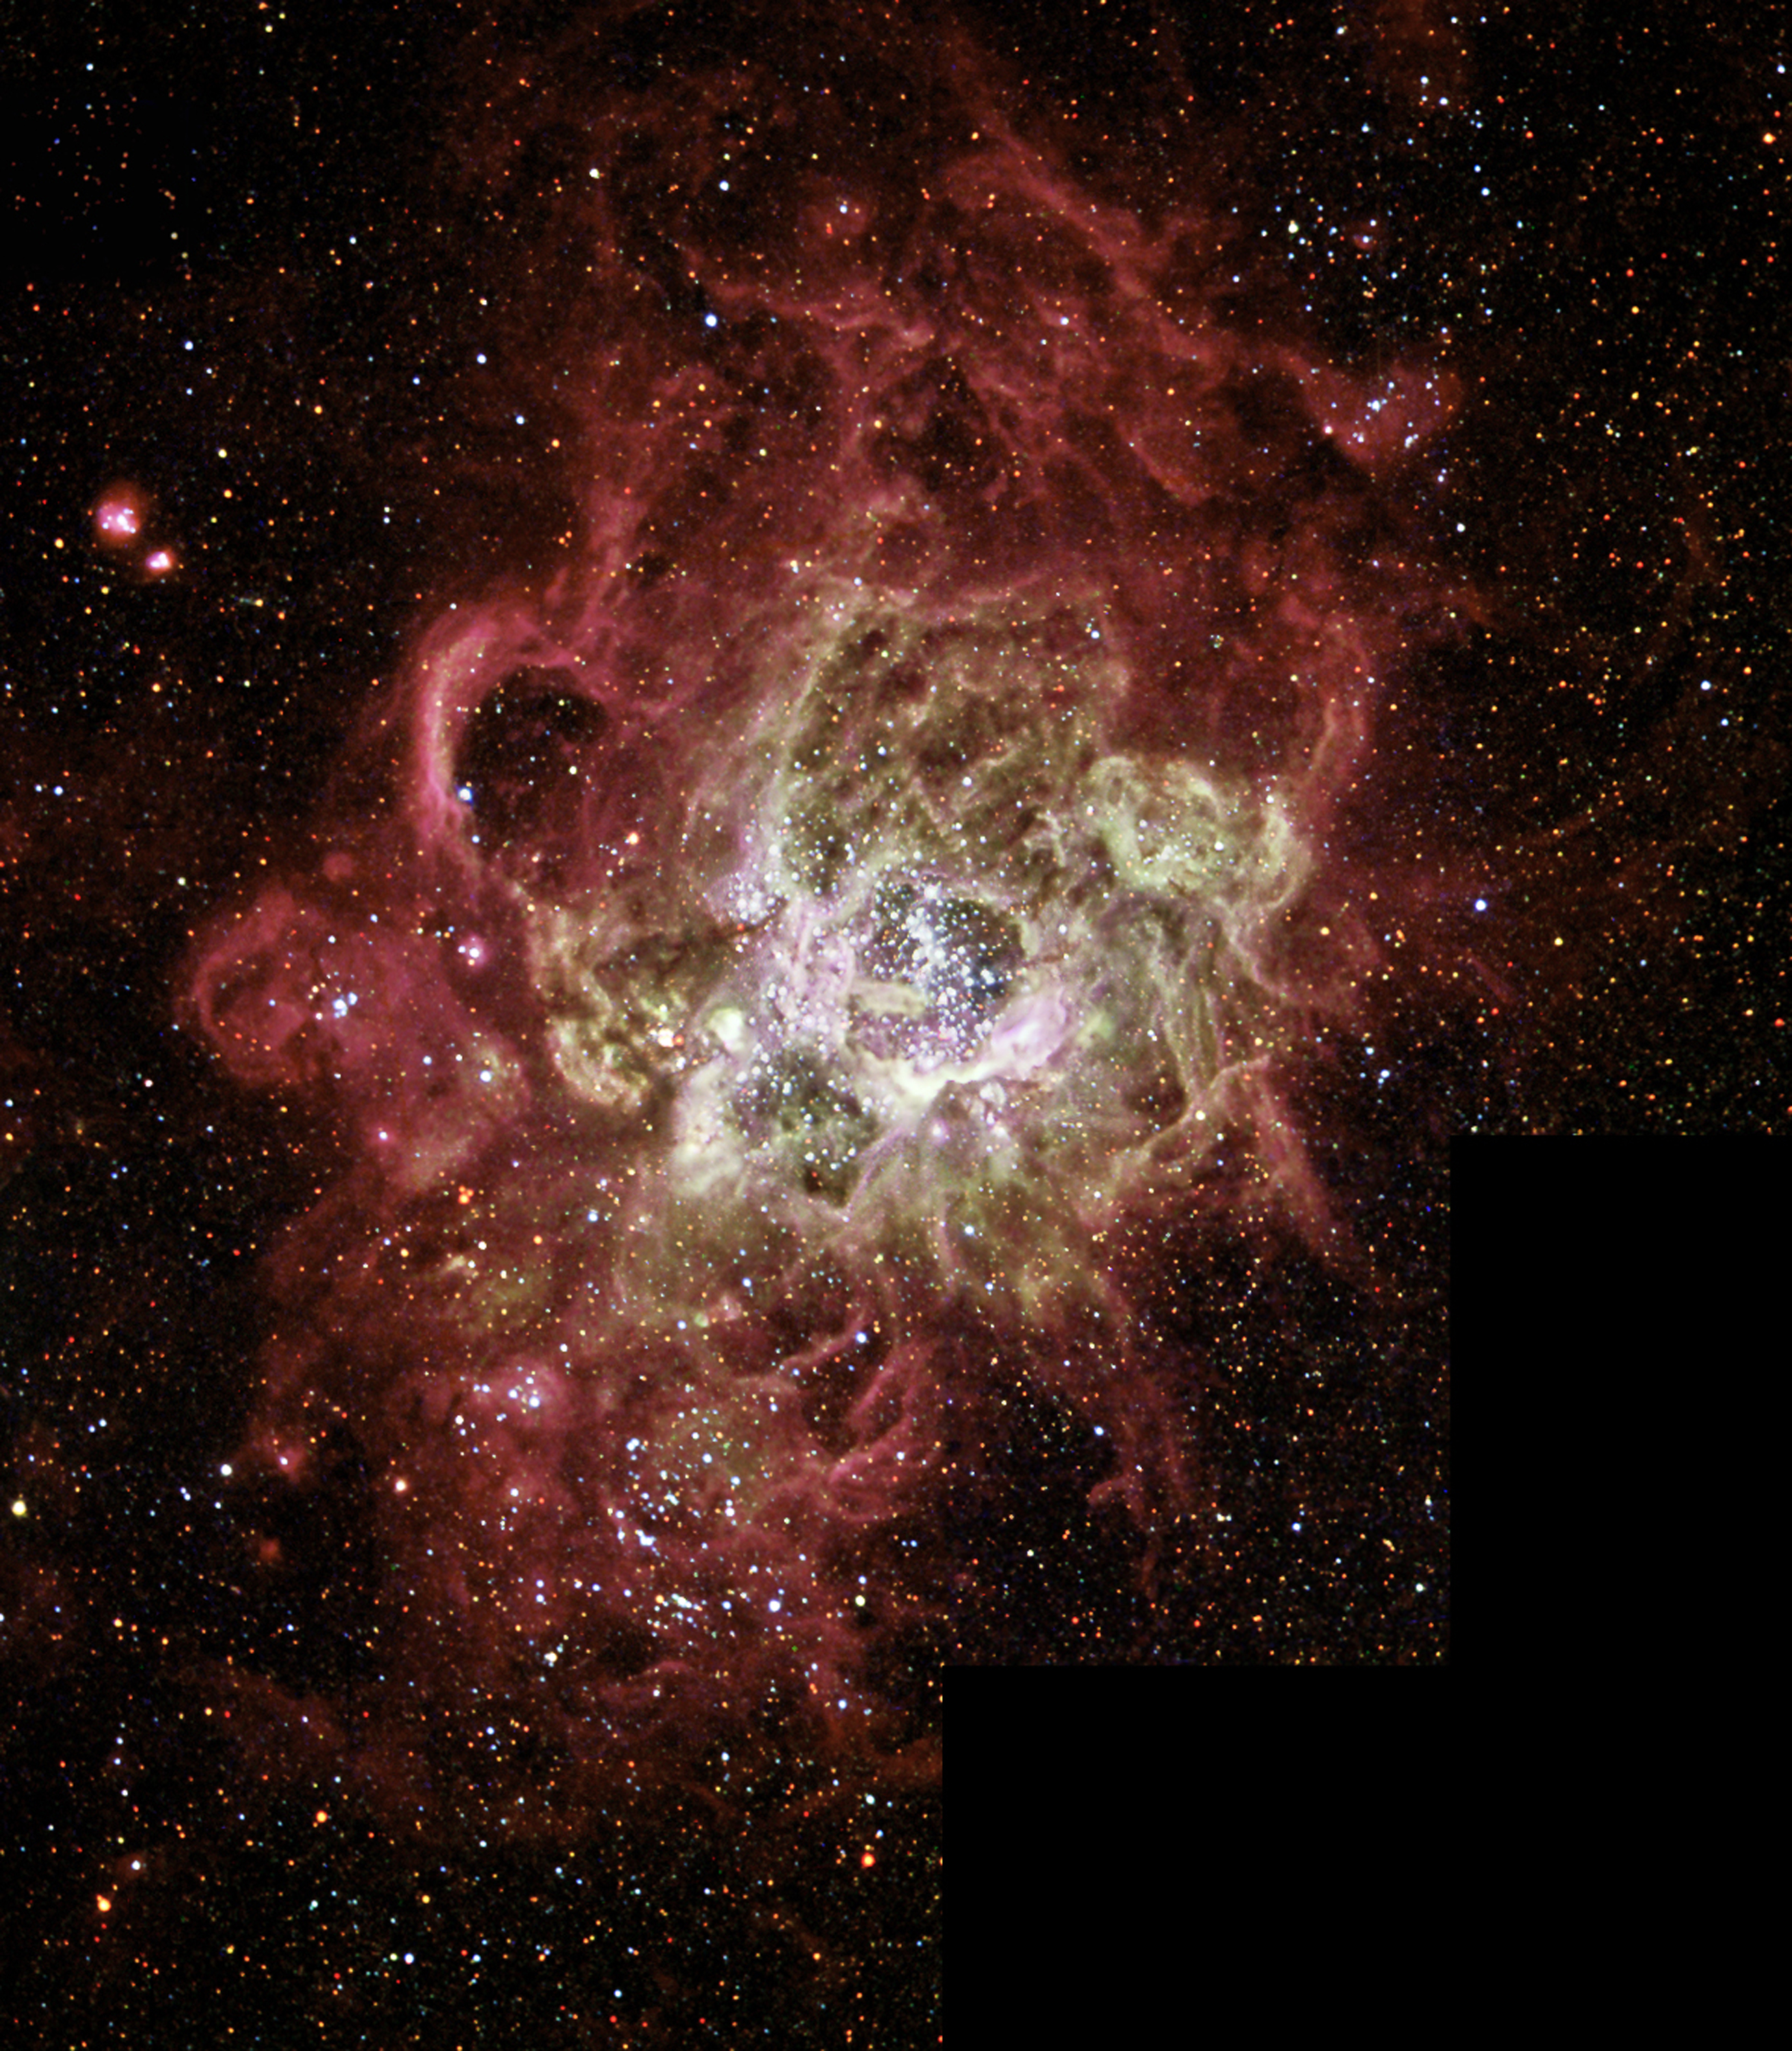 This festively colorful nebula, called NGC 604, is one of the largest known seething cauldrons of star birth in a nearby galaxy. (NASA via Getty Images)